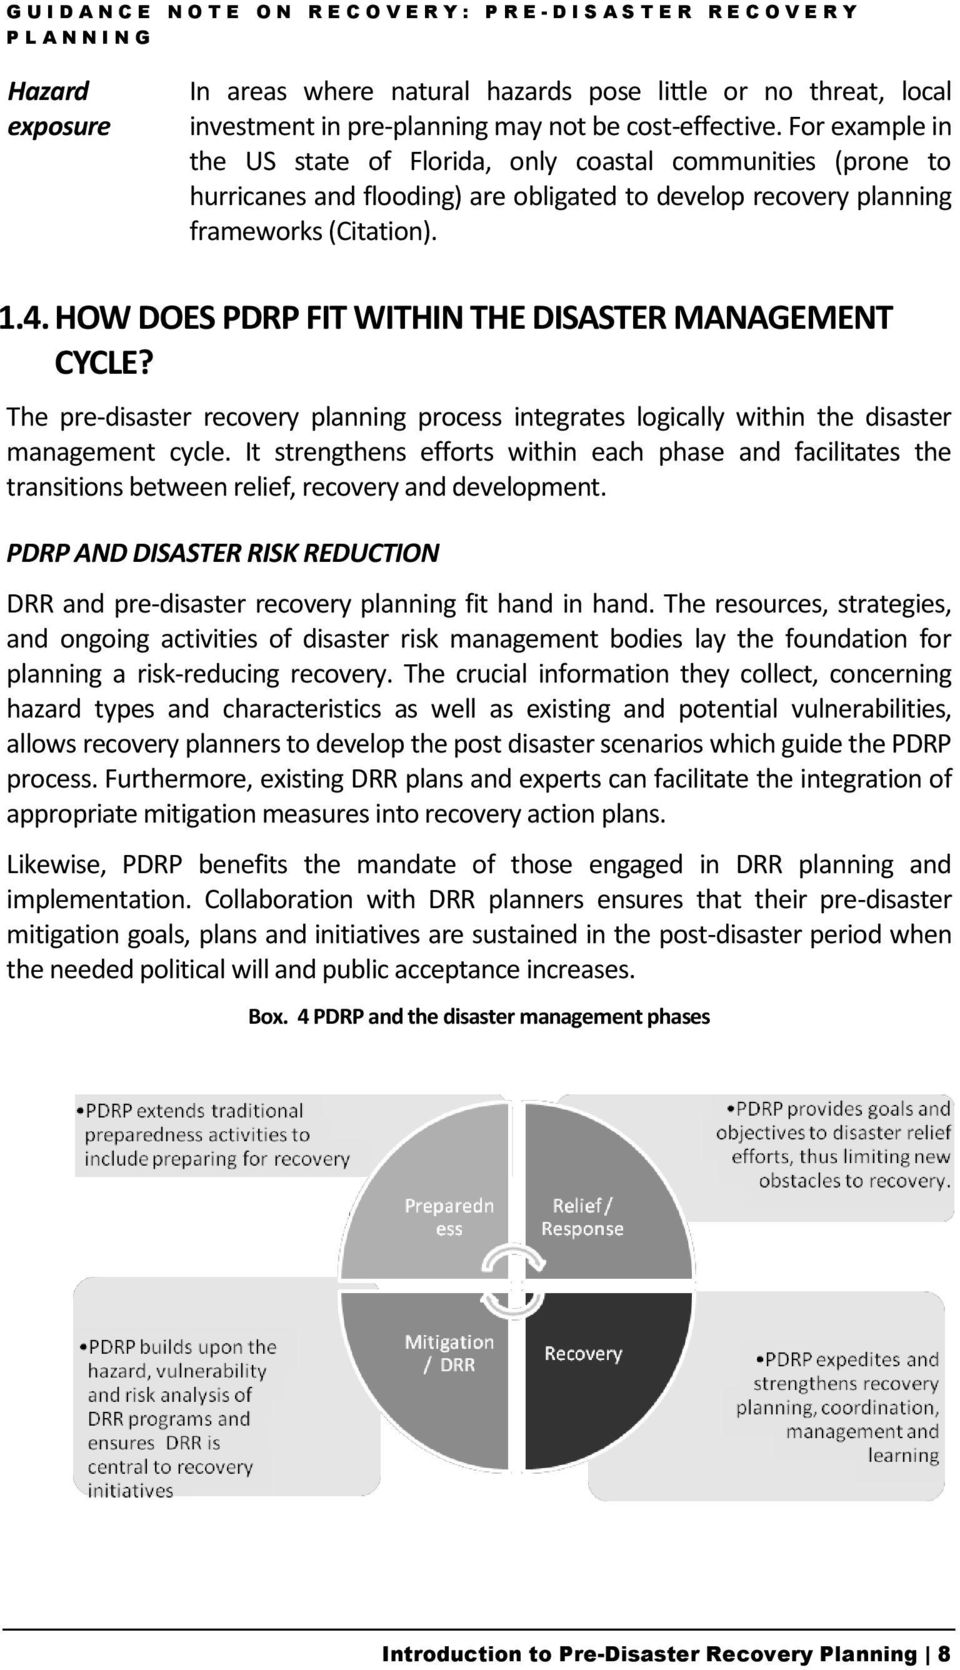 HOW DOES PDRP FIT WITHIN THE DISASTER MANAGEMENT CYCLE? The pre-disaster recovery planning process integrates logically within the disaster management cycle.